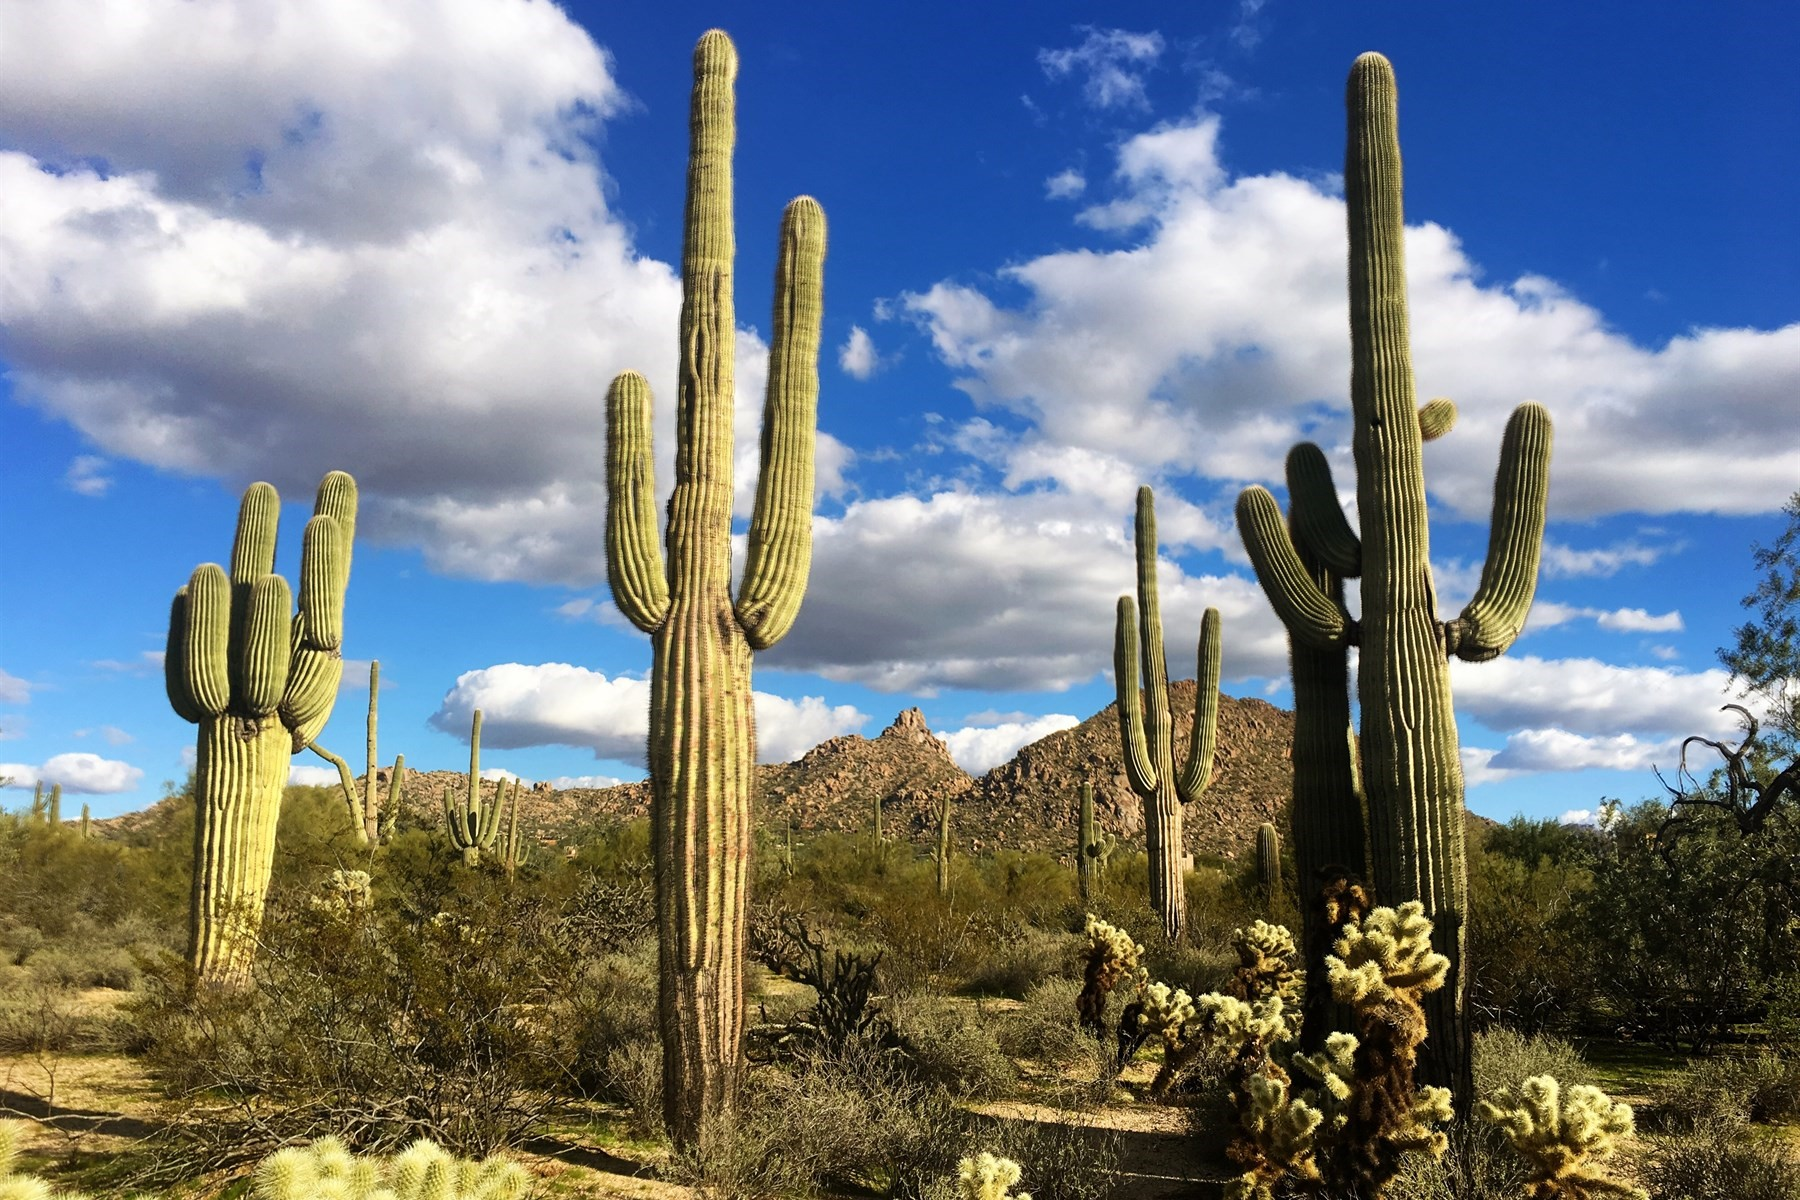 Terreno por un Venta en Prestigious Section 31 five-acre homesite with equestrian privileges 27087 N 90th St Scottsdale, Arizona, 85262 Estados Unidos